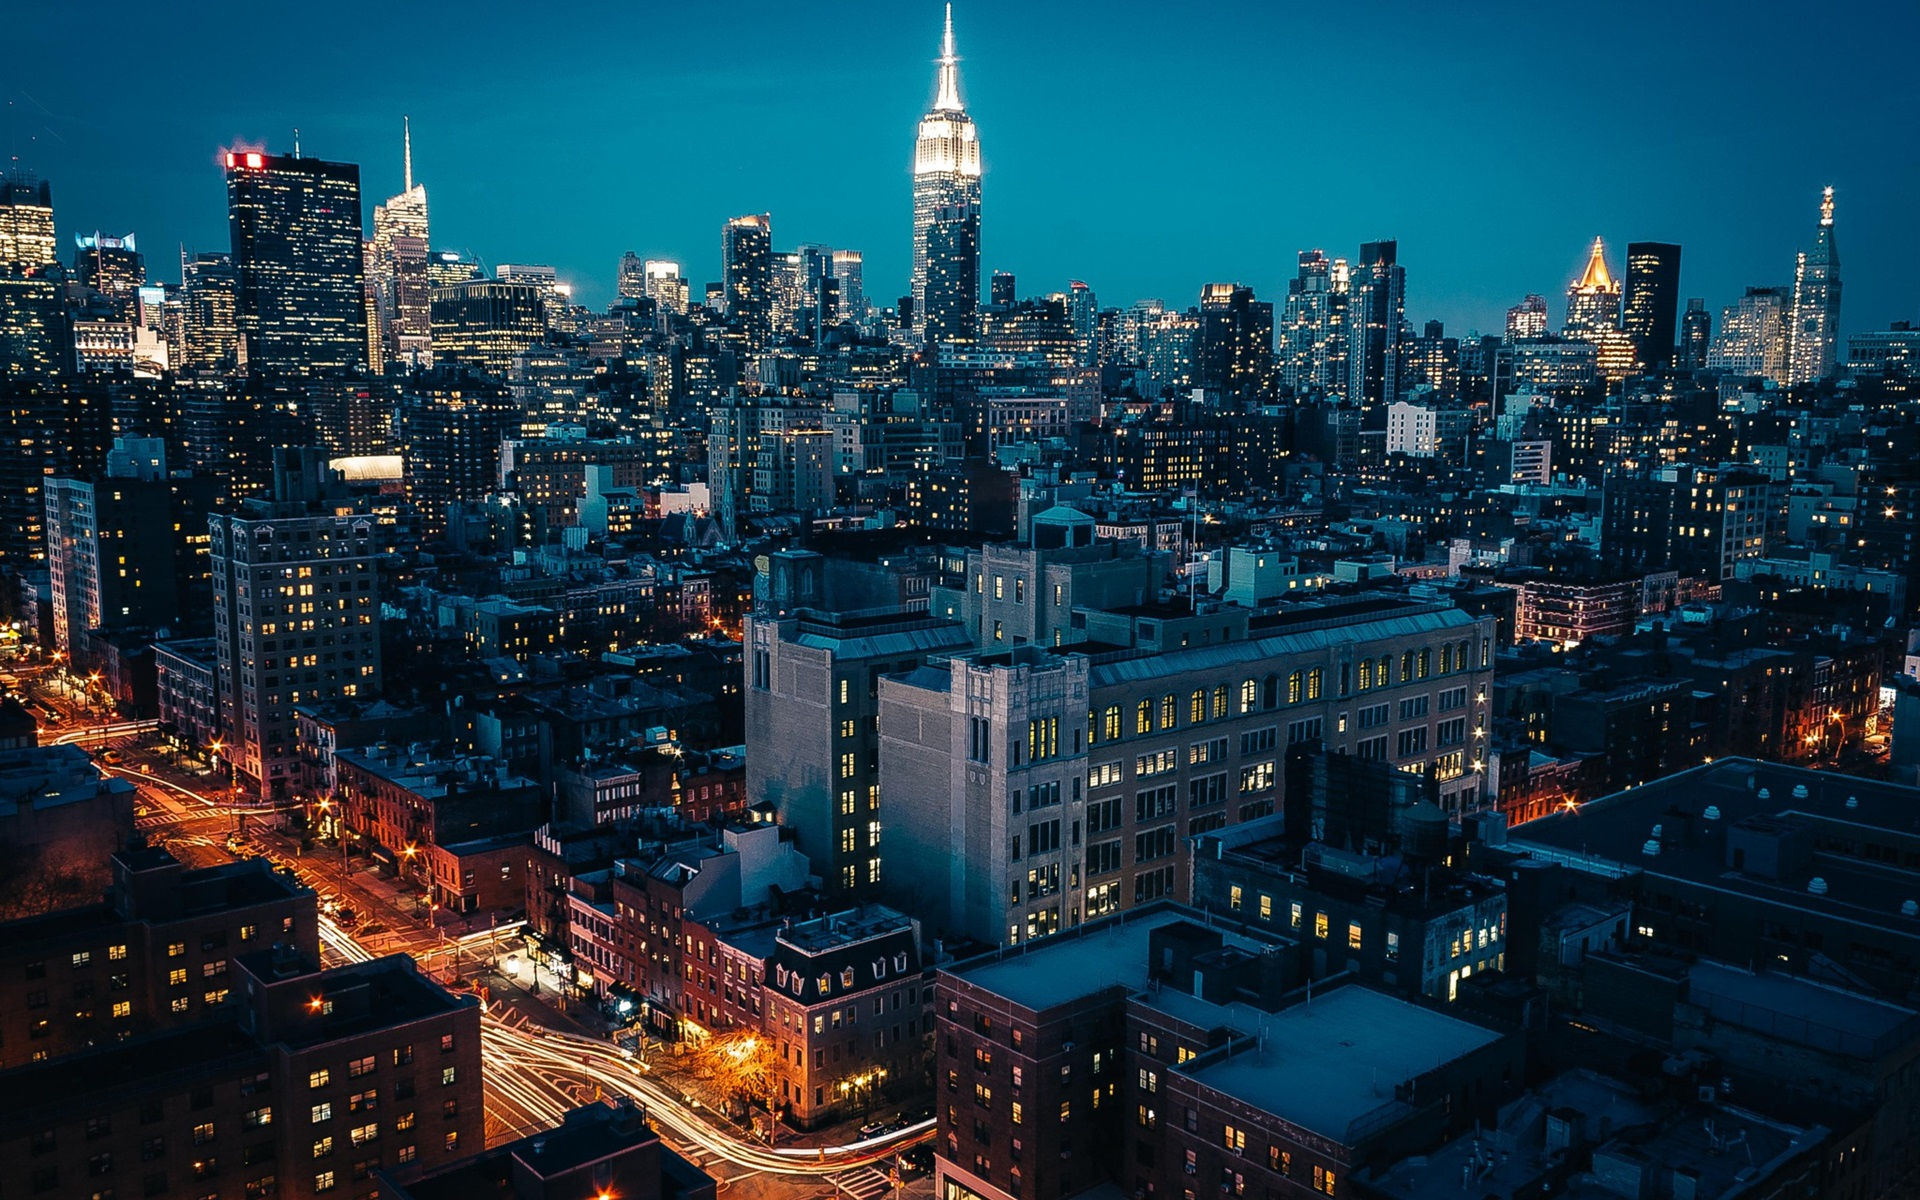 Wallpaper New York City Night Skyscrapers Lights Road 1920x1200 Hd Picture Image